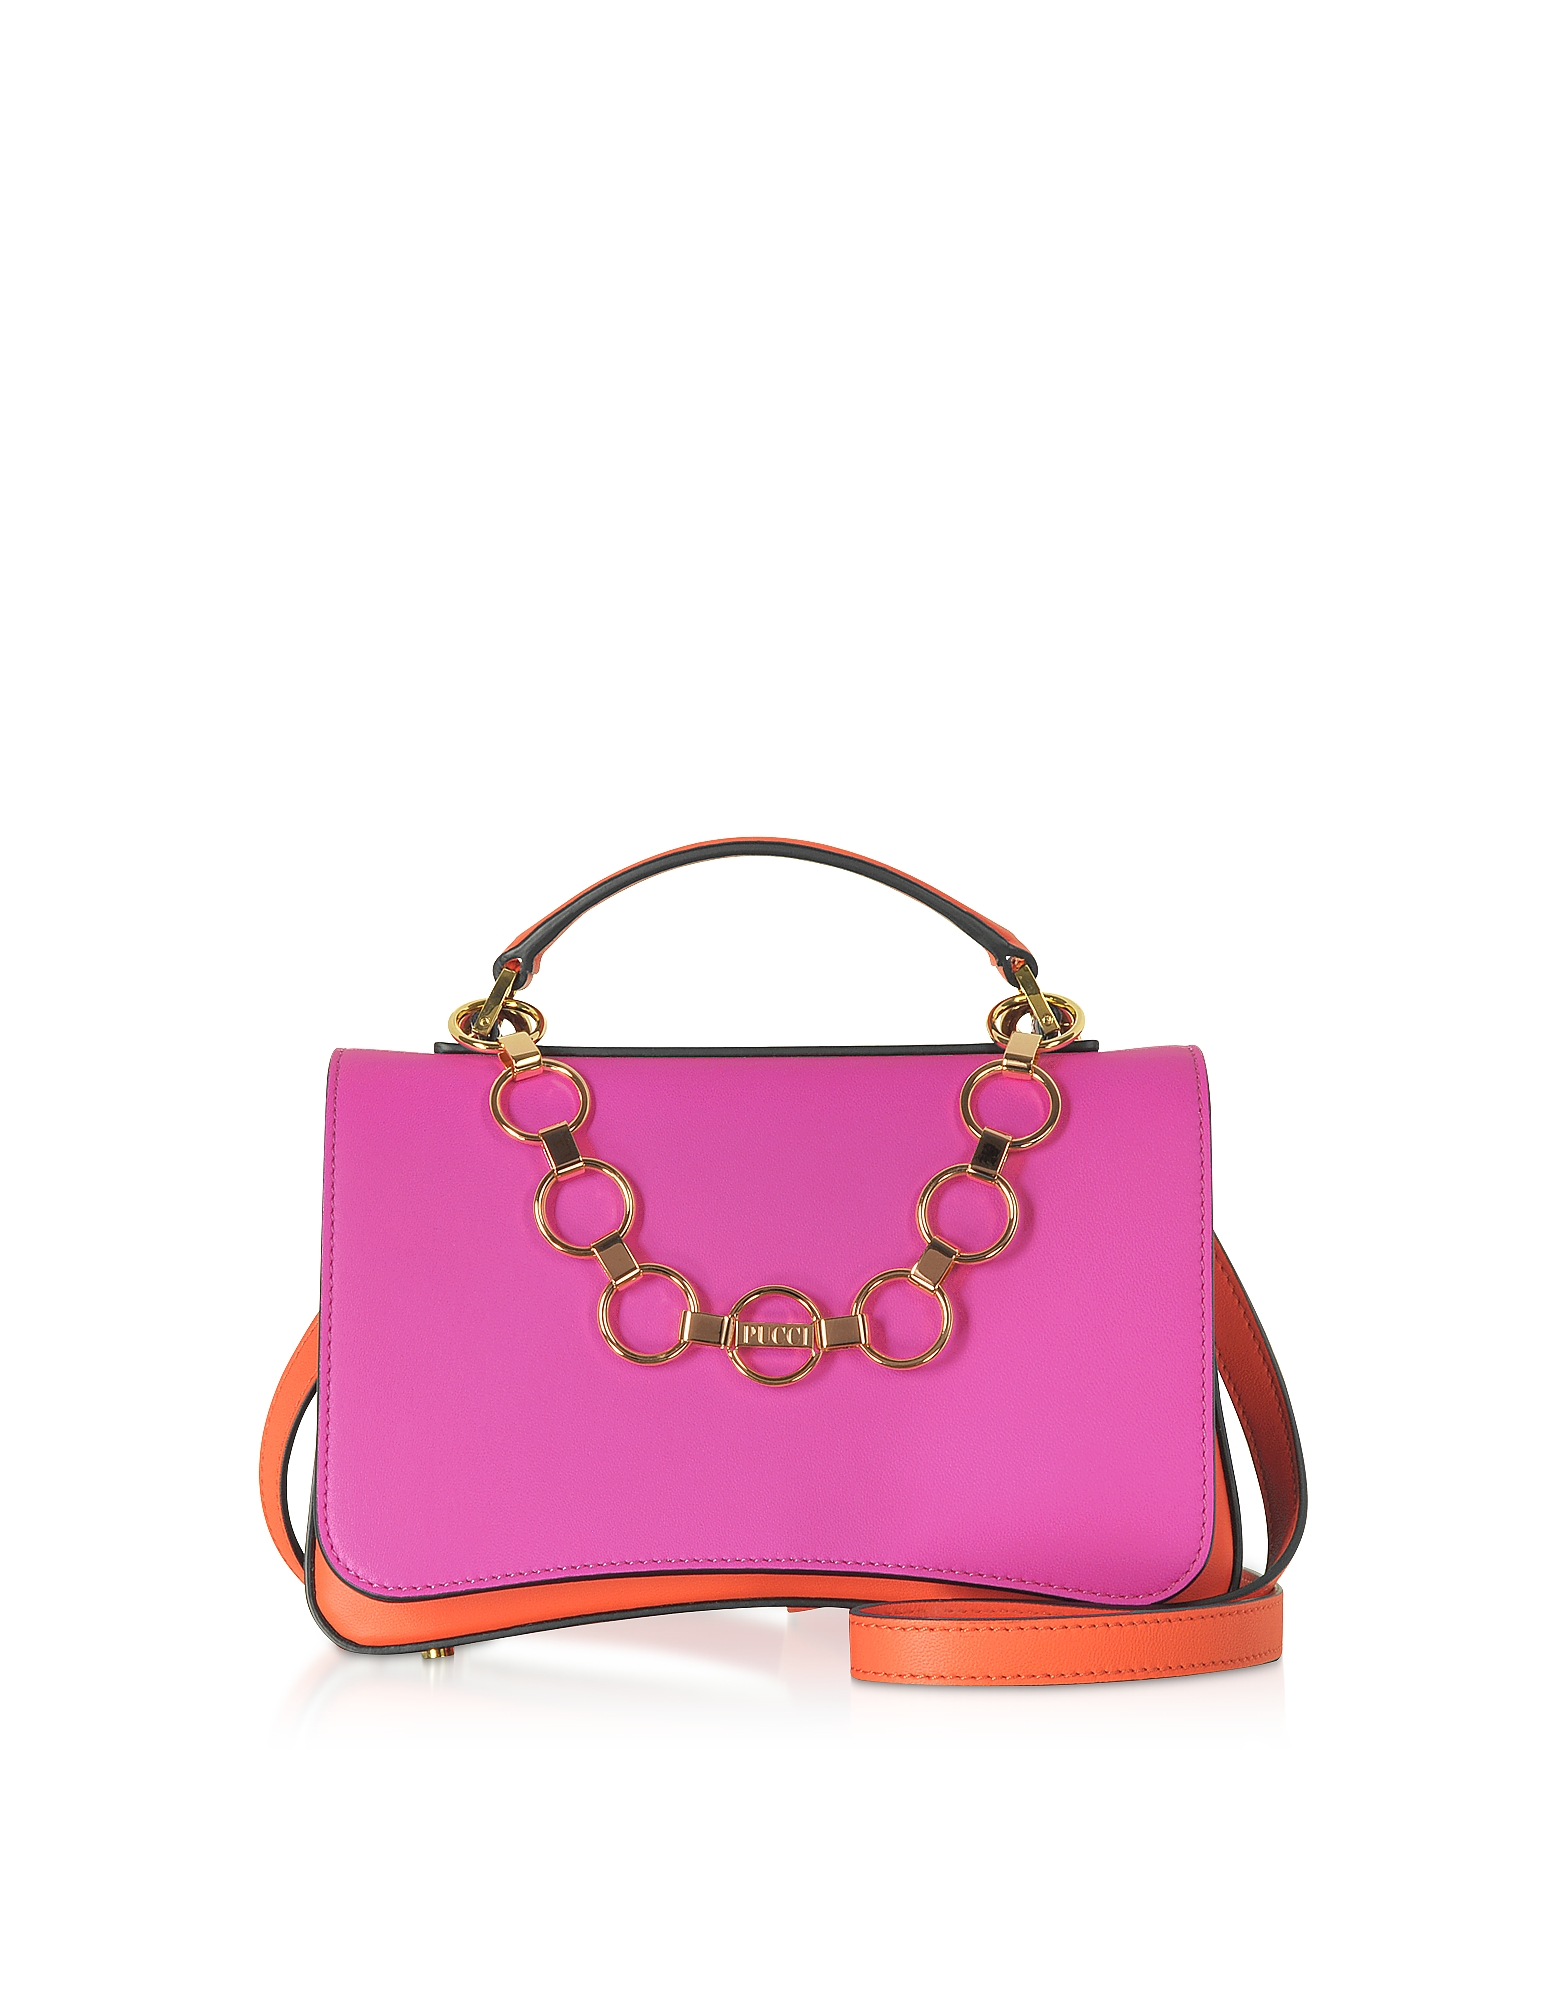 Chance Chain Color Block Leather Satchel Bag